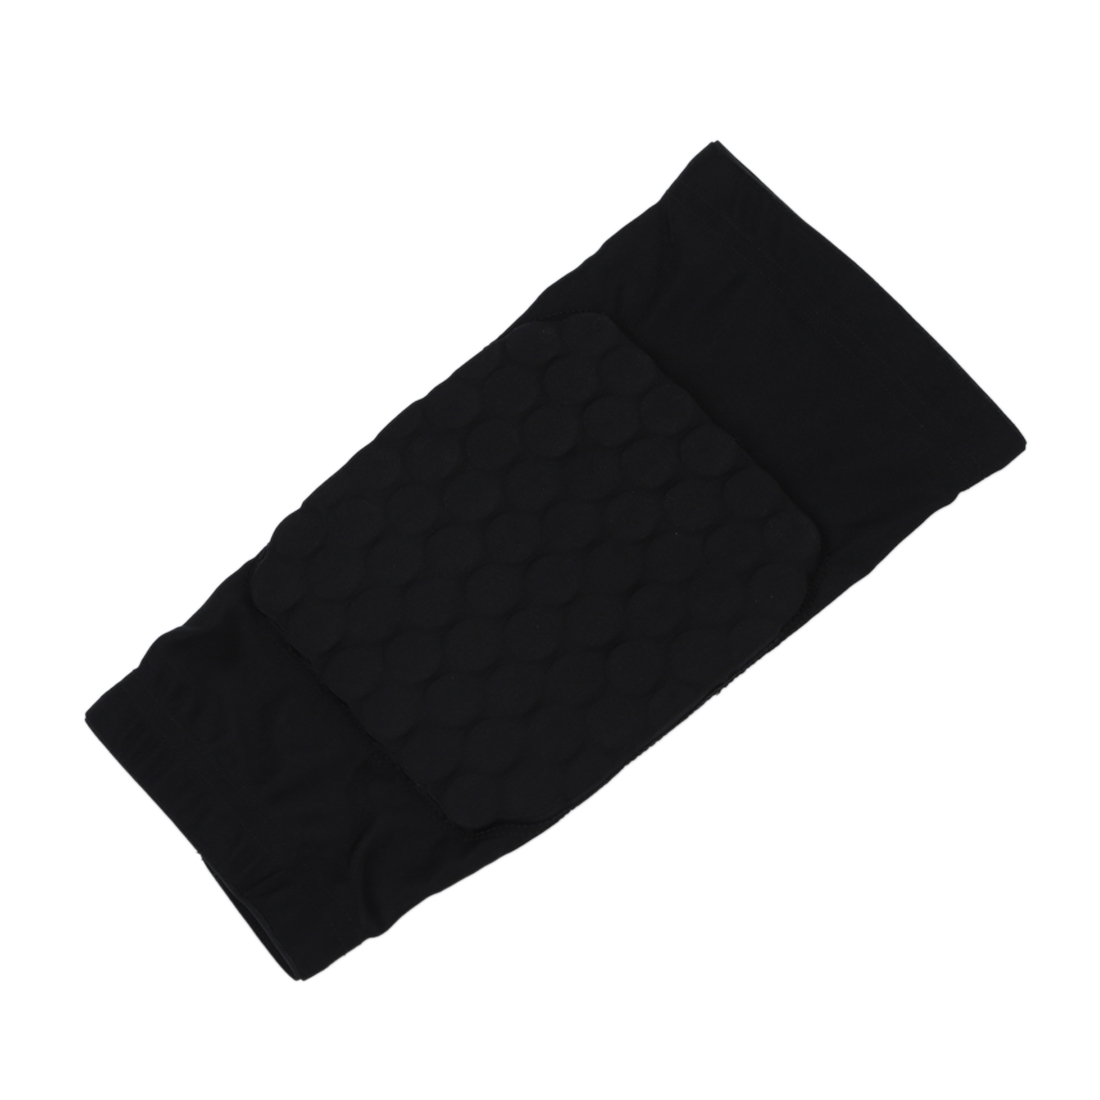 MOOL Knee Patella Sport Support Guard Pad Protector Brace Strap Stabilizer Protection - Black